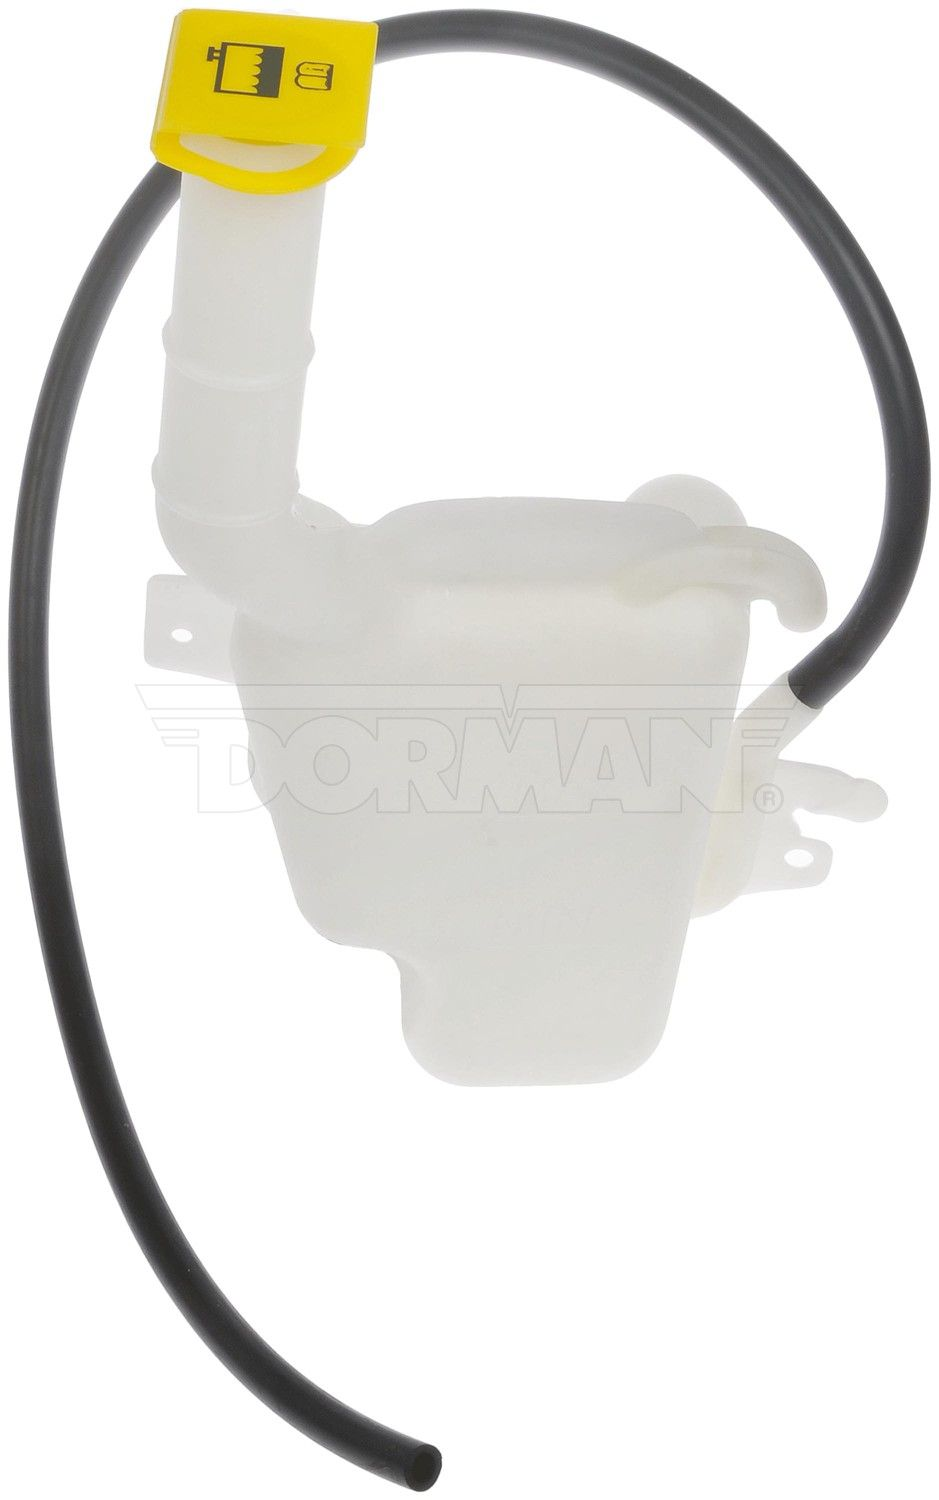 Plymouth Grand Voyager Engine Coolant Reservoir Replacement Dorman 1996 N A 6 Cyl 30l 603 069